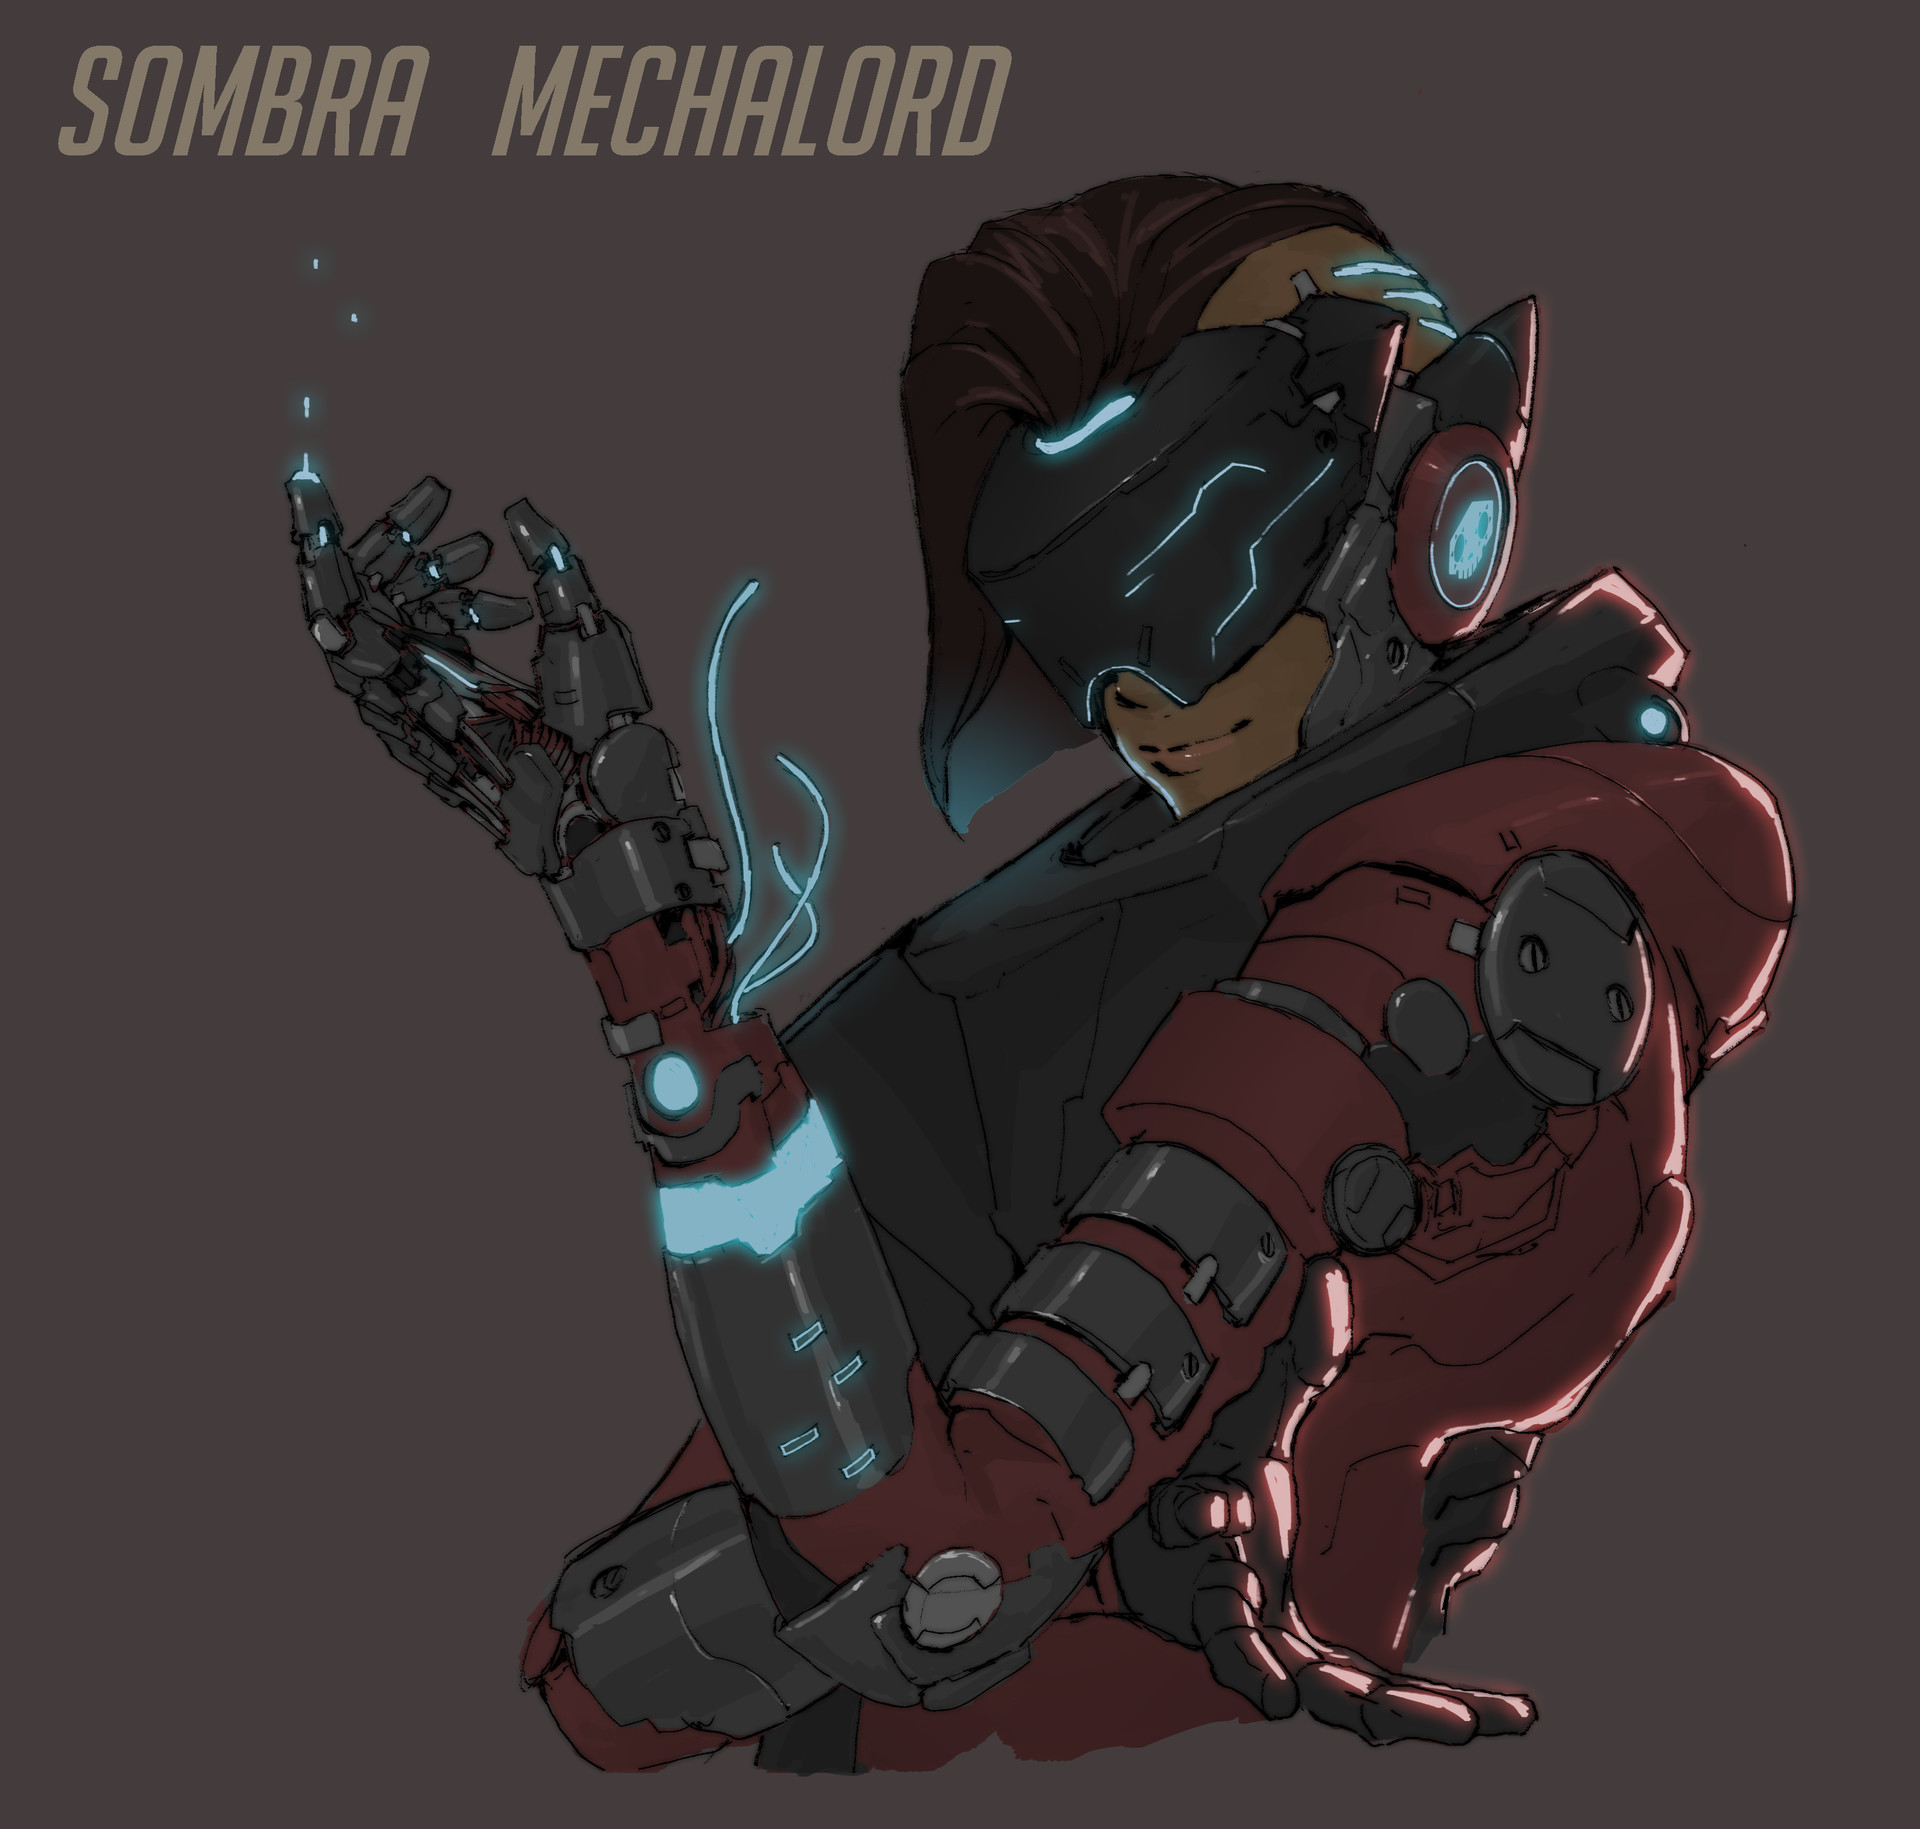 Ching yeh sombra